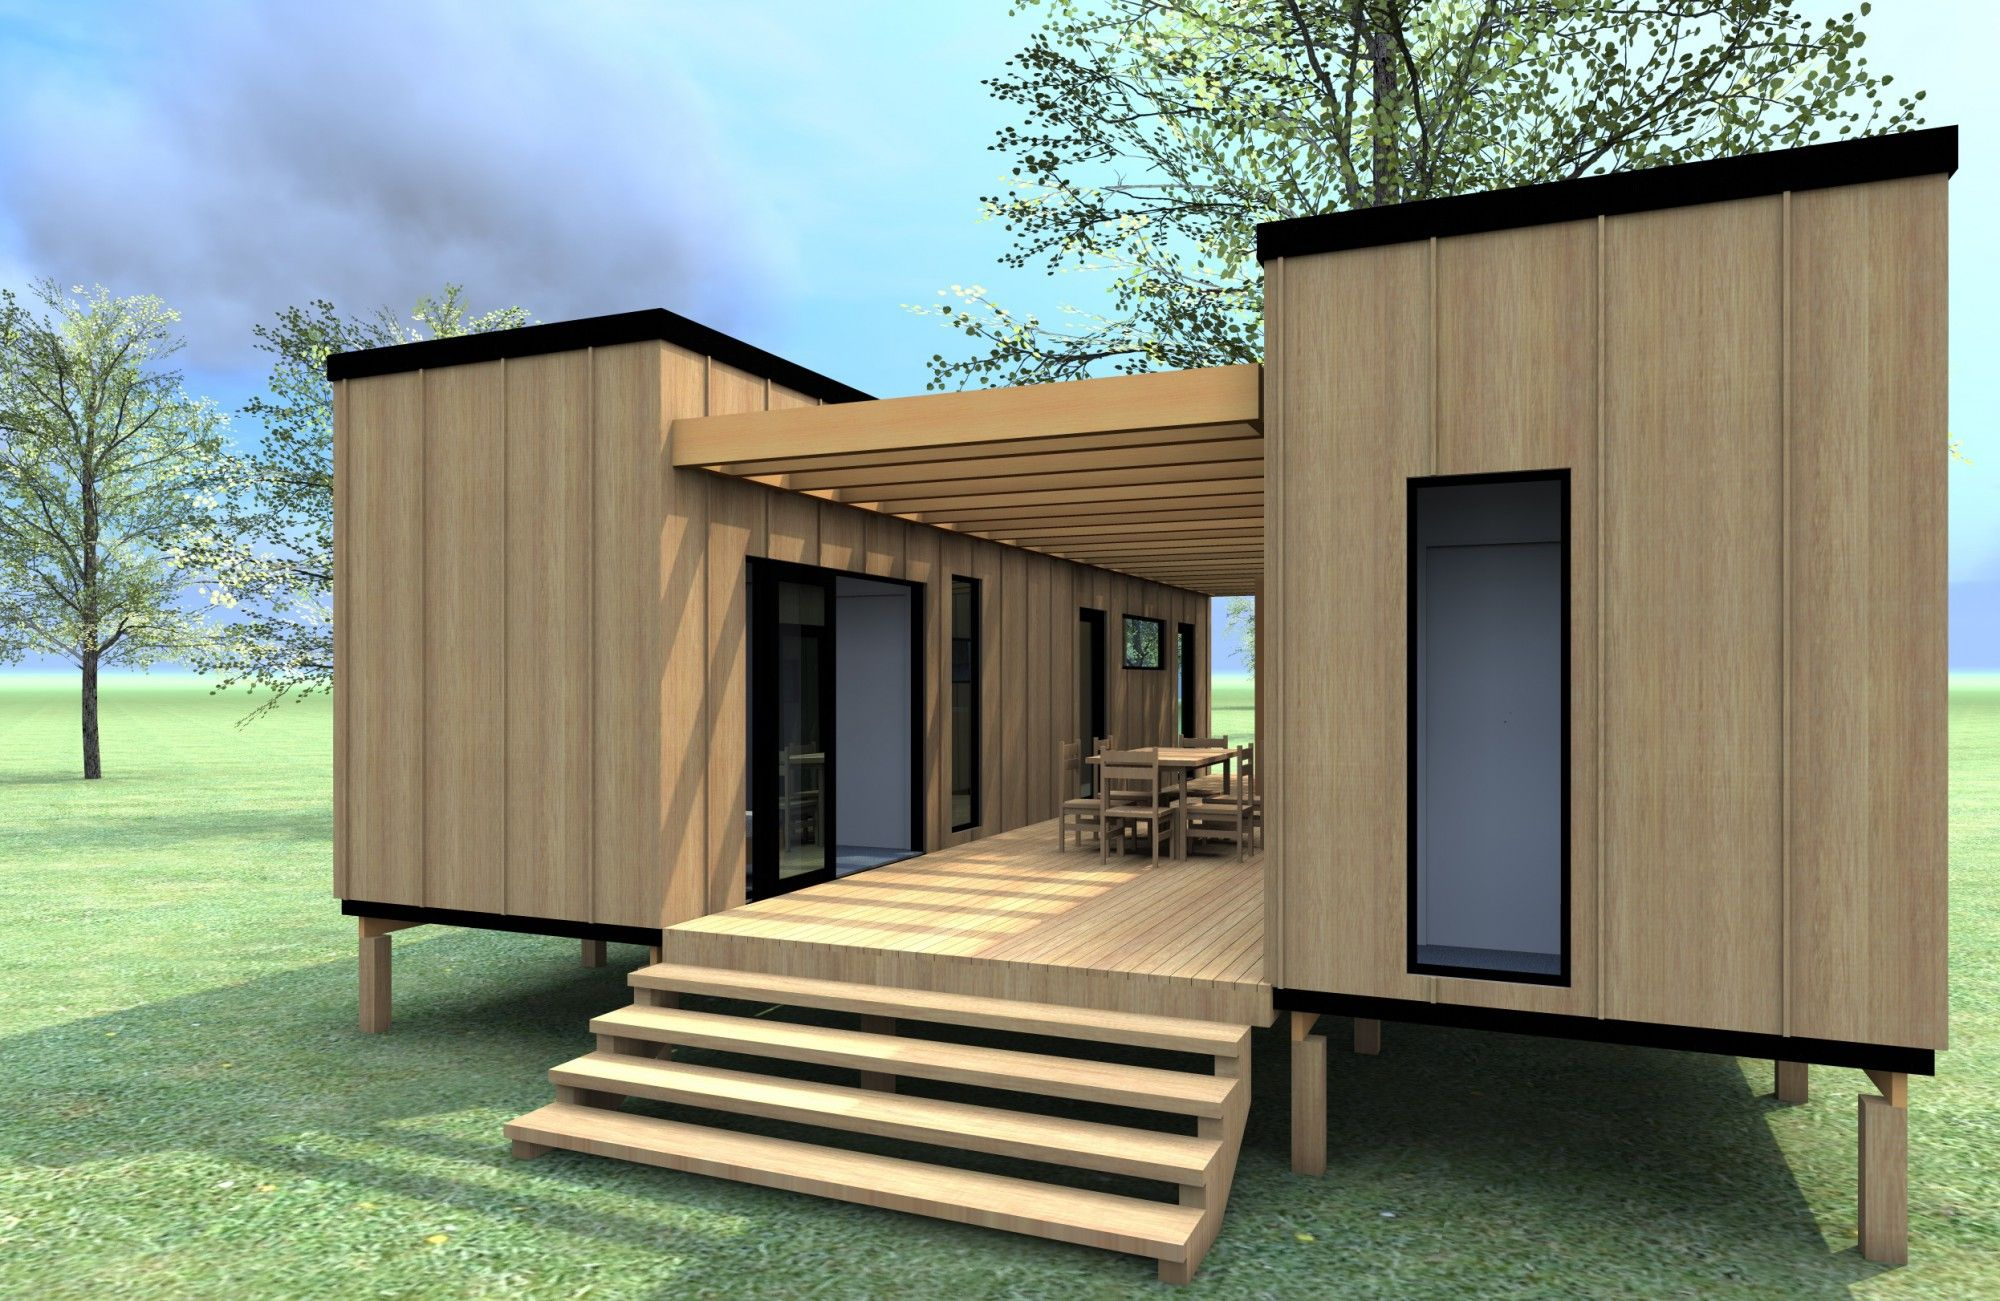 trinidad model design living area in one container sleeping and rh pinterest com